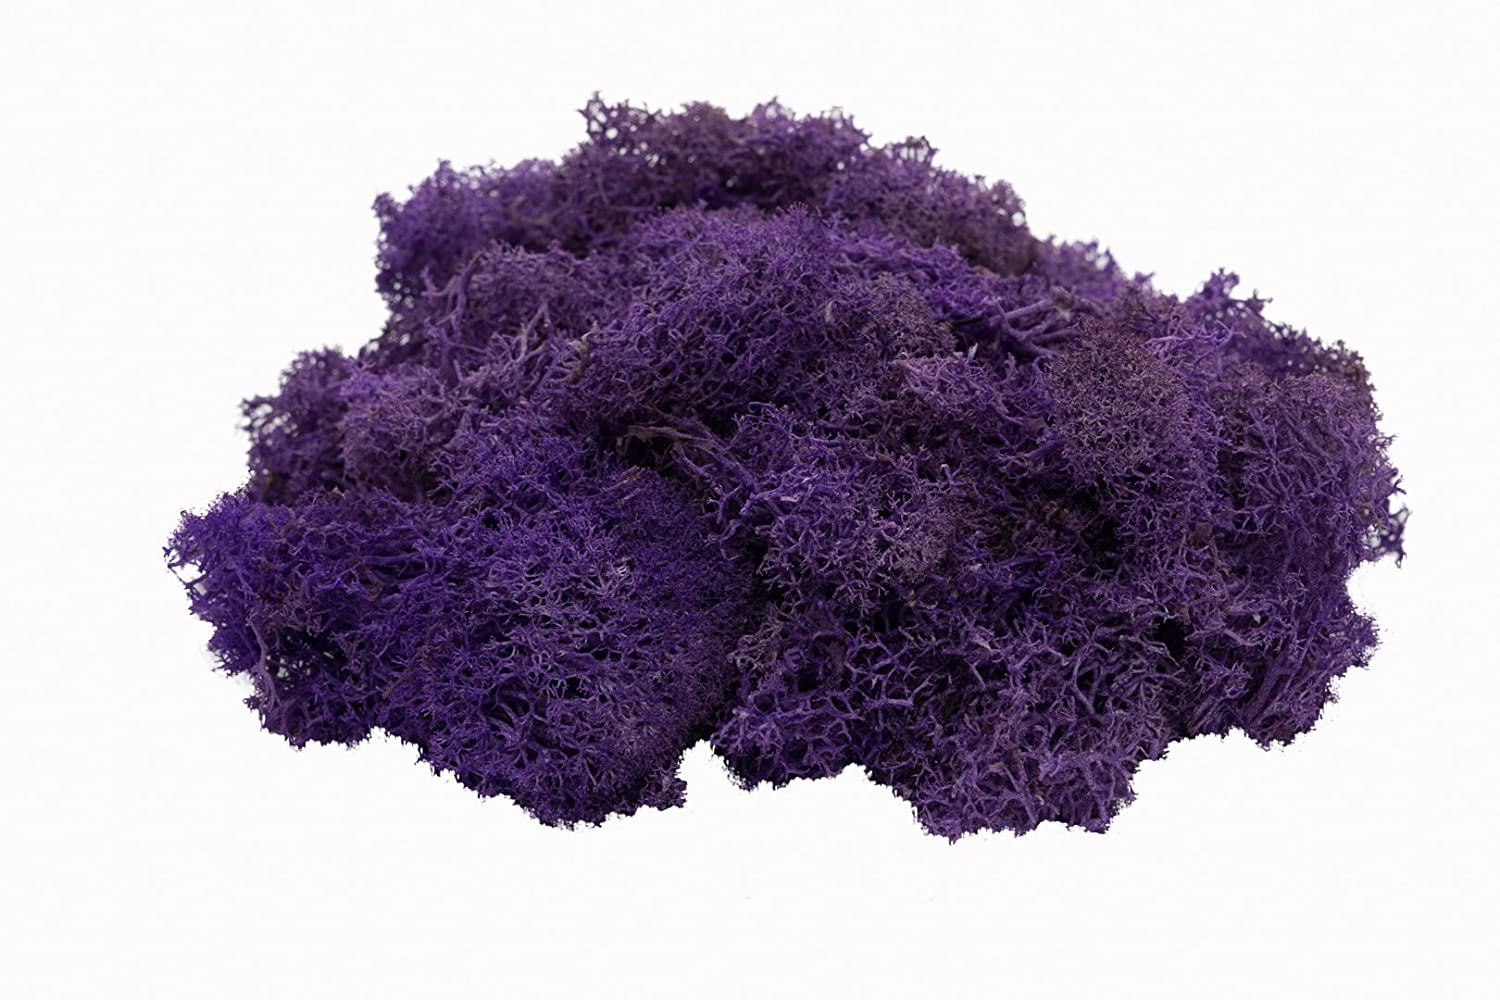 2 Ounces LavenderMoss or Any Craft or Floral Project | Terrariums Reindeer Moss Preserved | Plus Free Nautical Ebook by Joseph Rains for Fairy Gardens